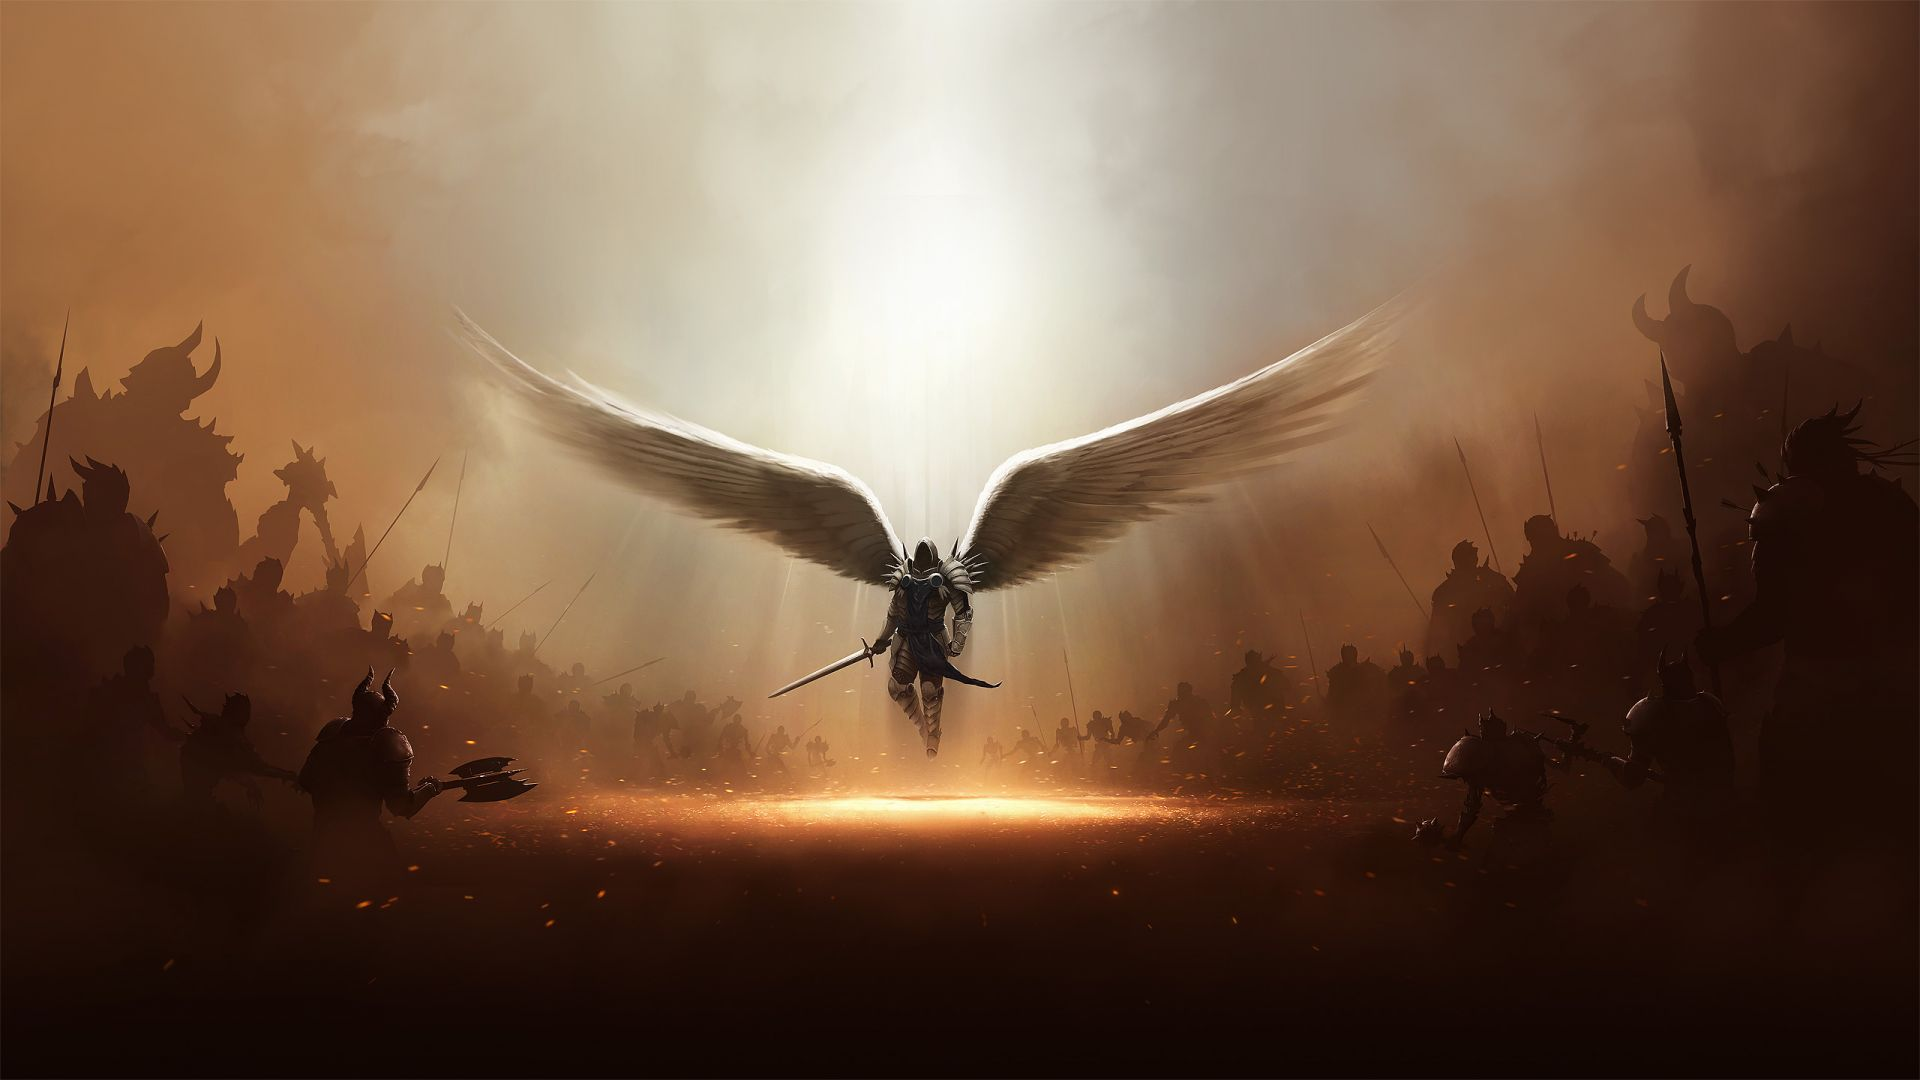 High Definition Wallpapers HD 19201080 Angel Warrior HD 1920x1080